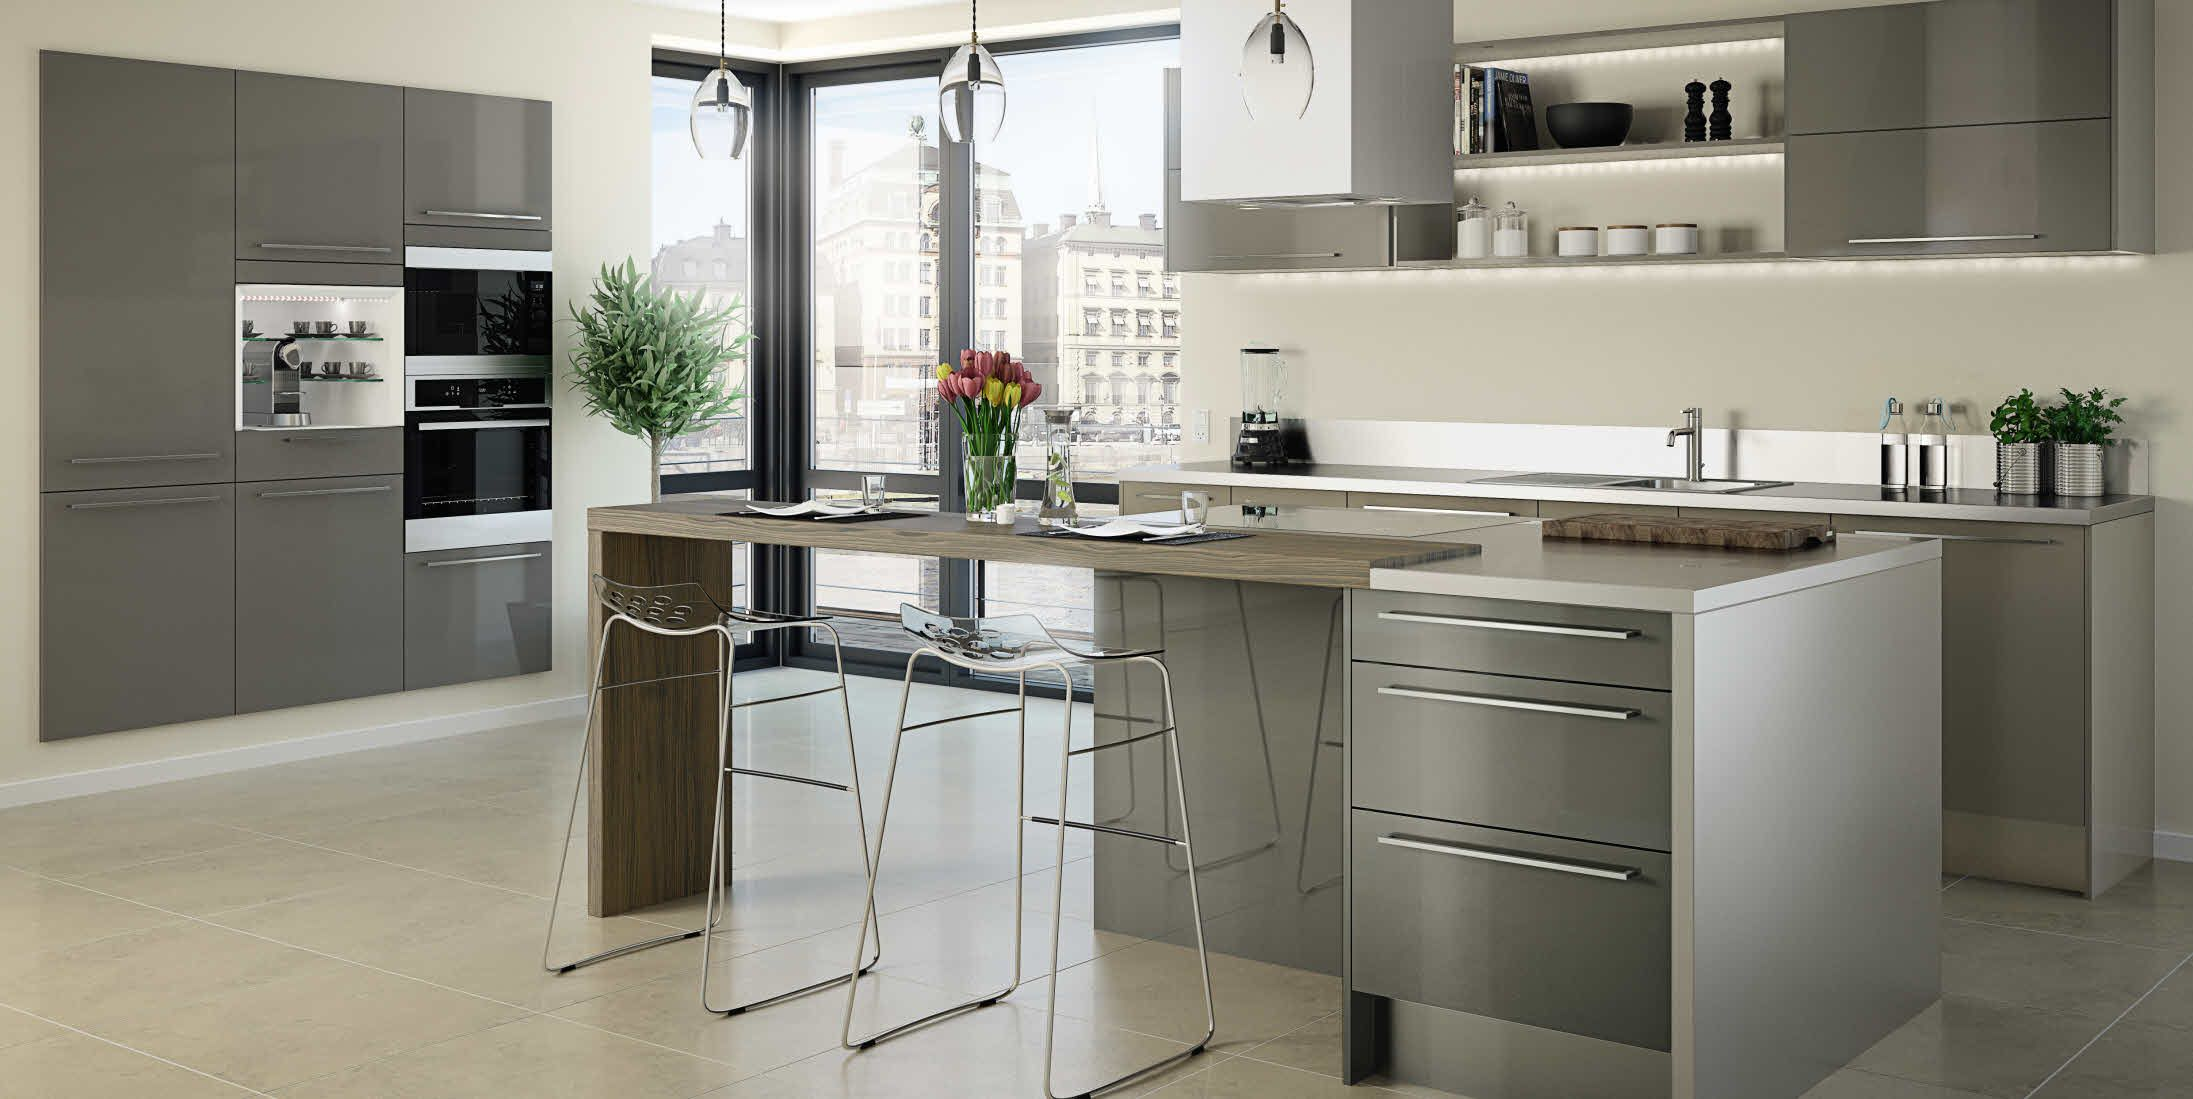 cuisine taupe modele astral taupe